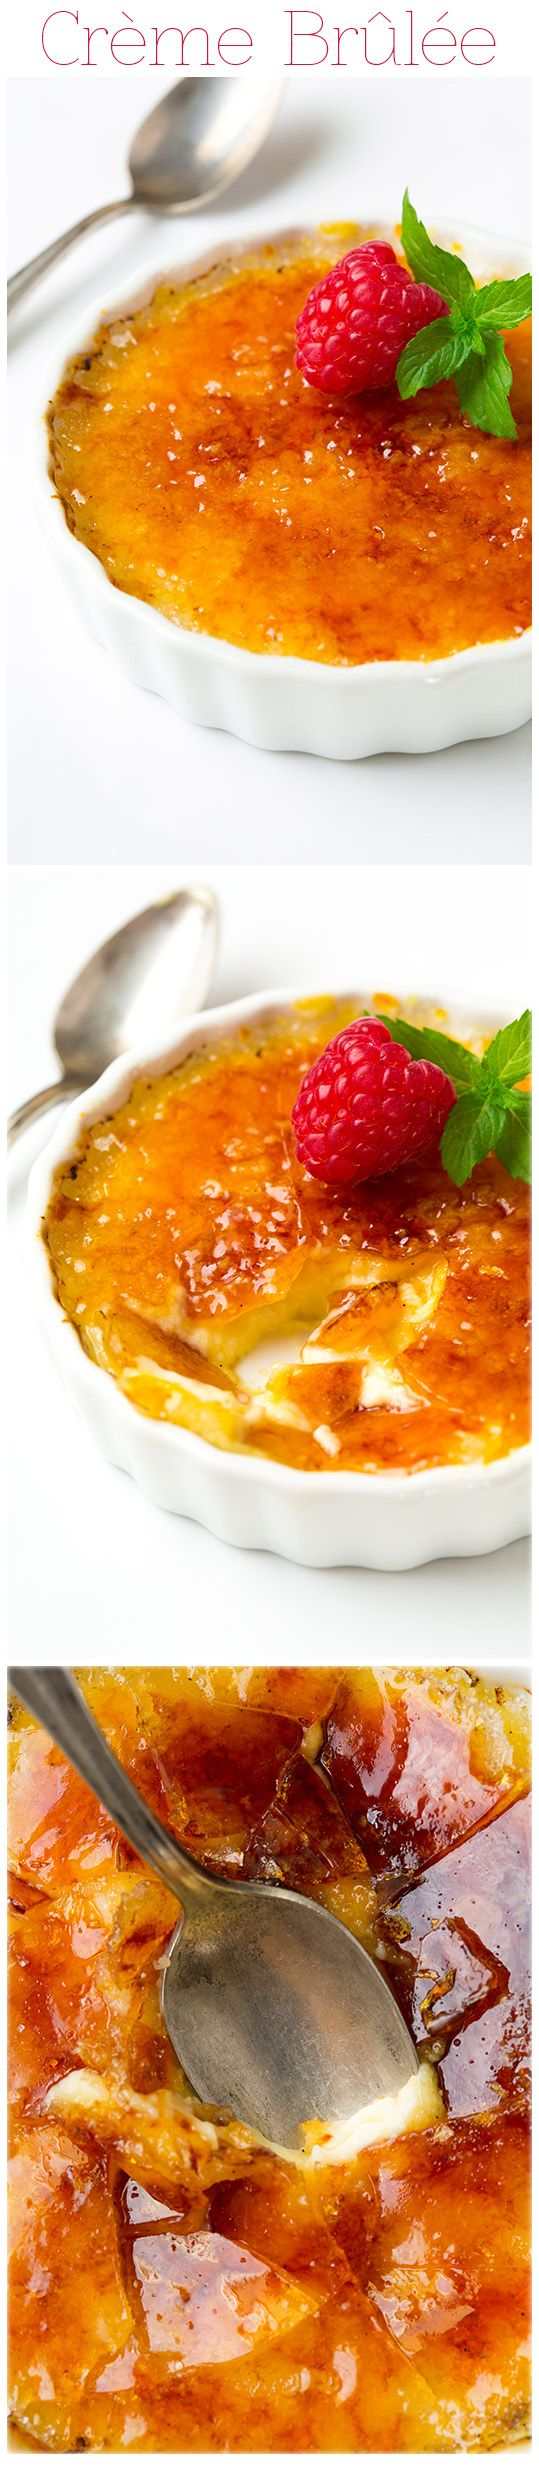 Crème Brûlée - This is one of my all time favorite desserts! LOVE this recipe!